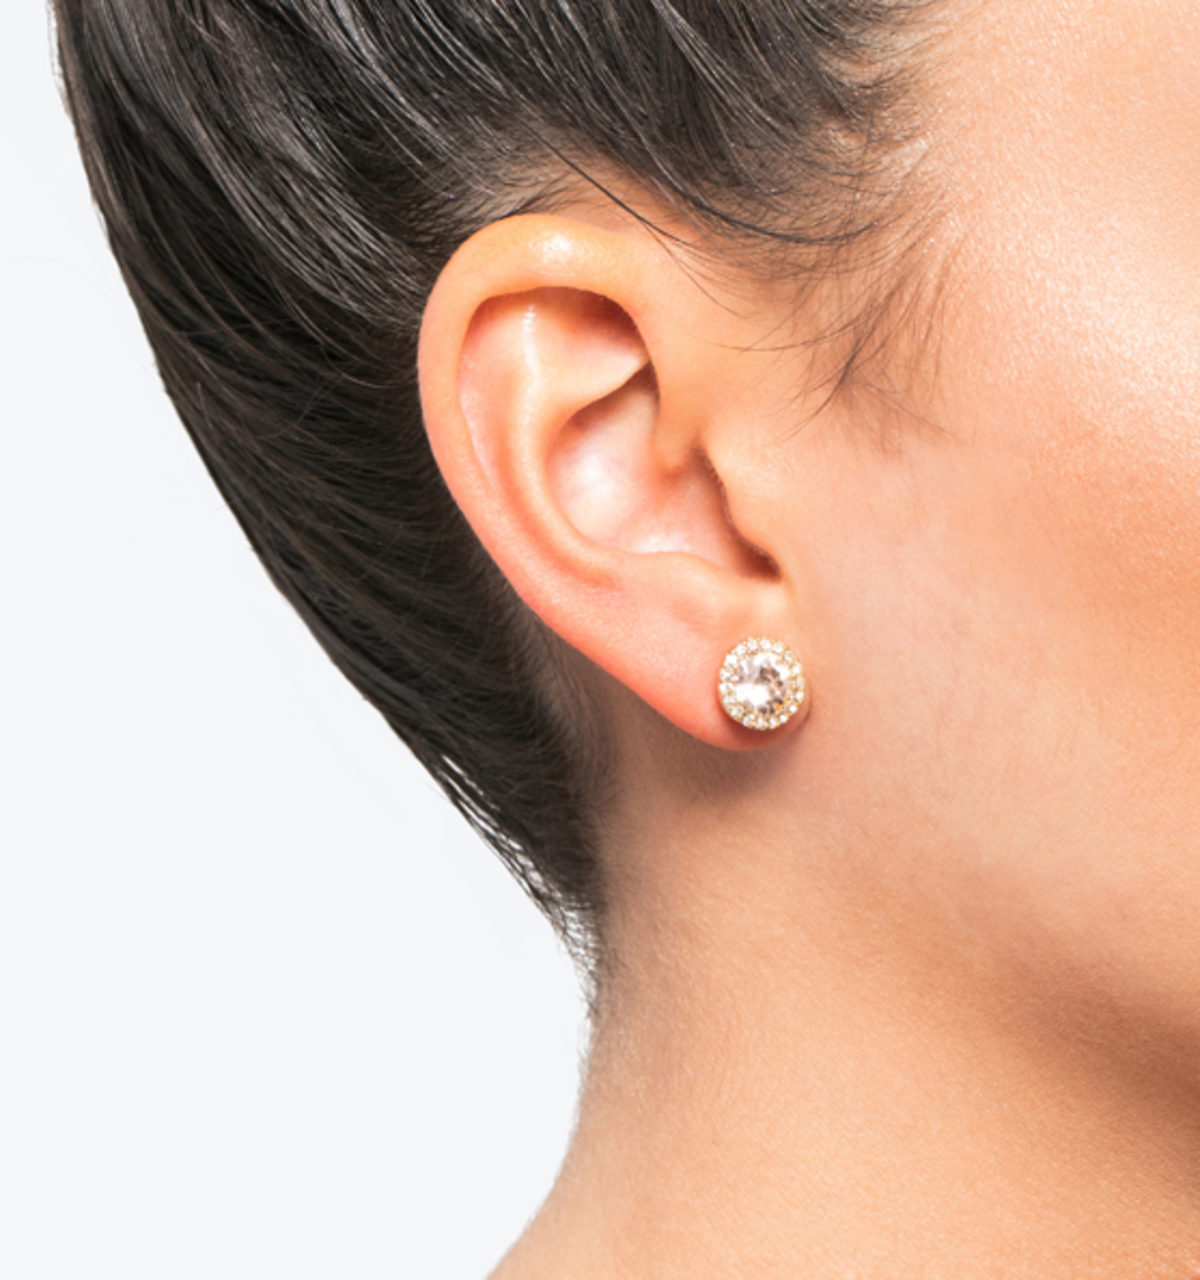 Stud earrings silk